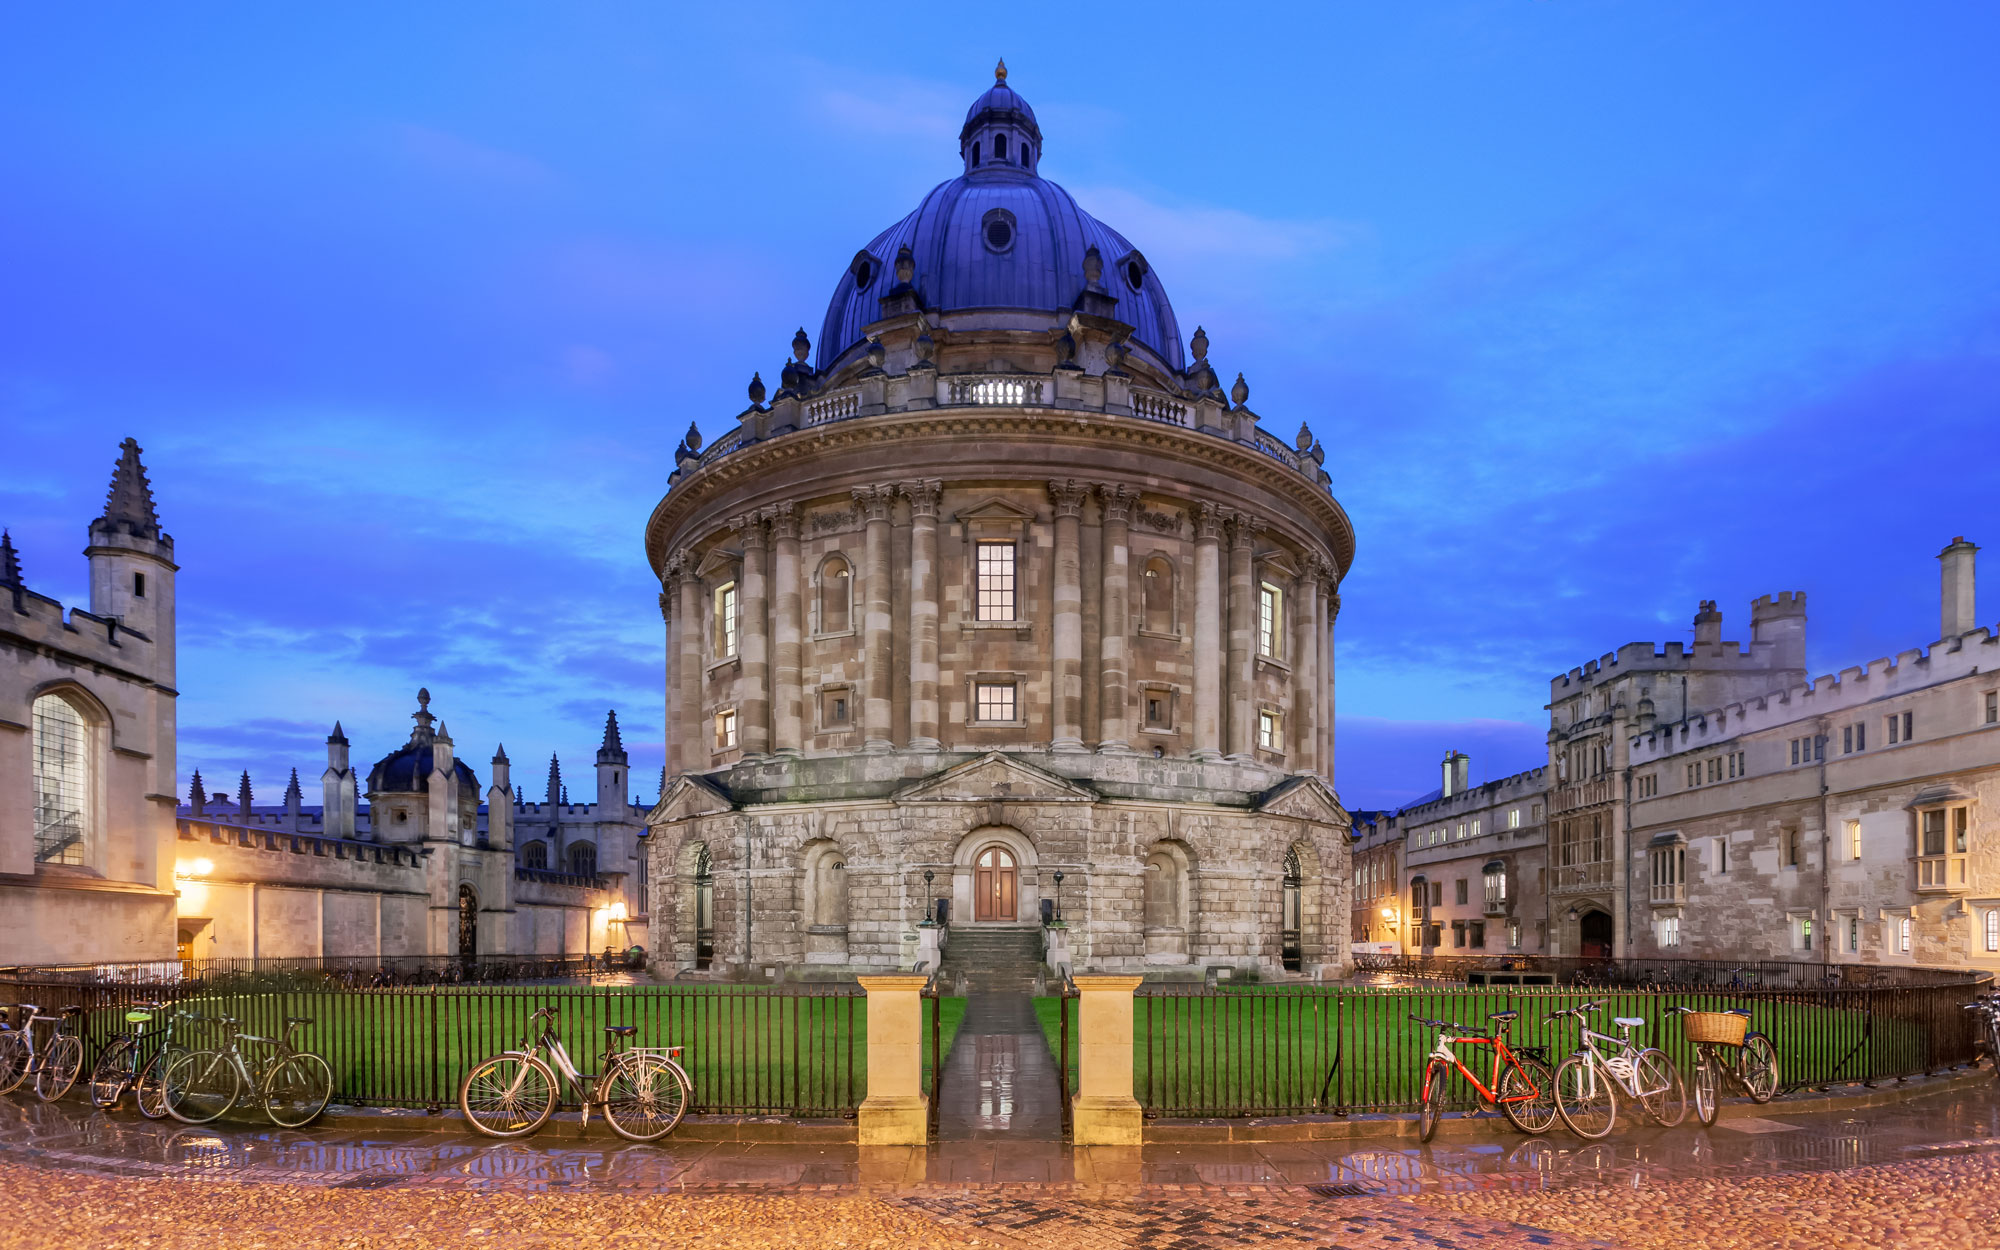 Things to Do in England: Stimulate Your Mind in Oxford